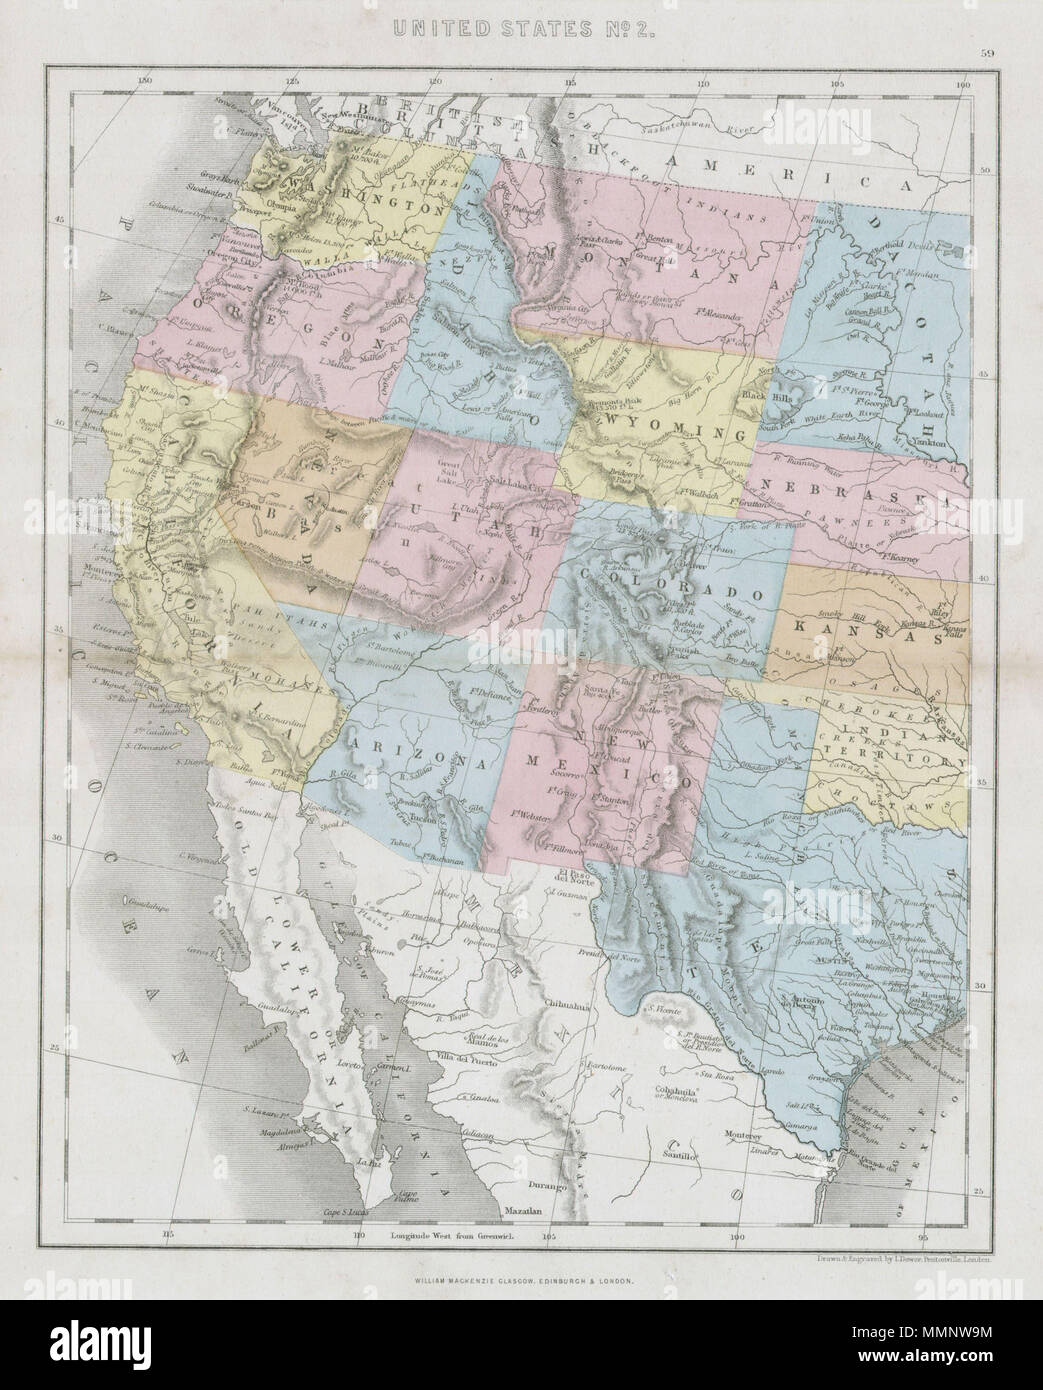 Map Of California And Arizona With Cities.English This Hand Colored Map Depicts The Western Half Of The